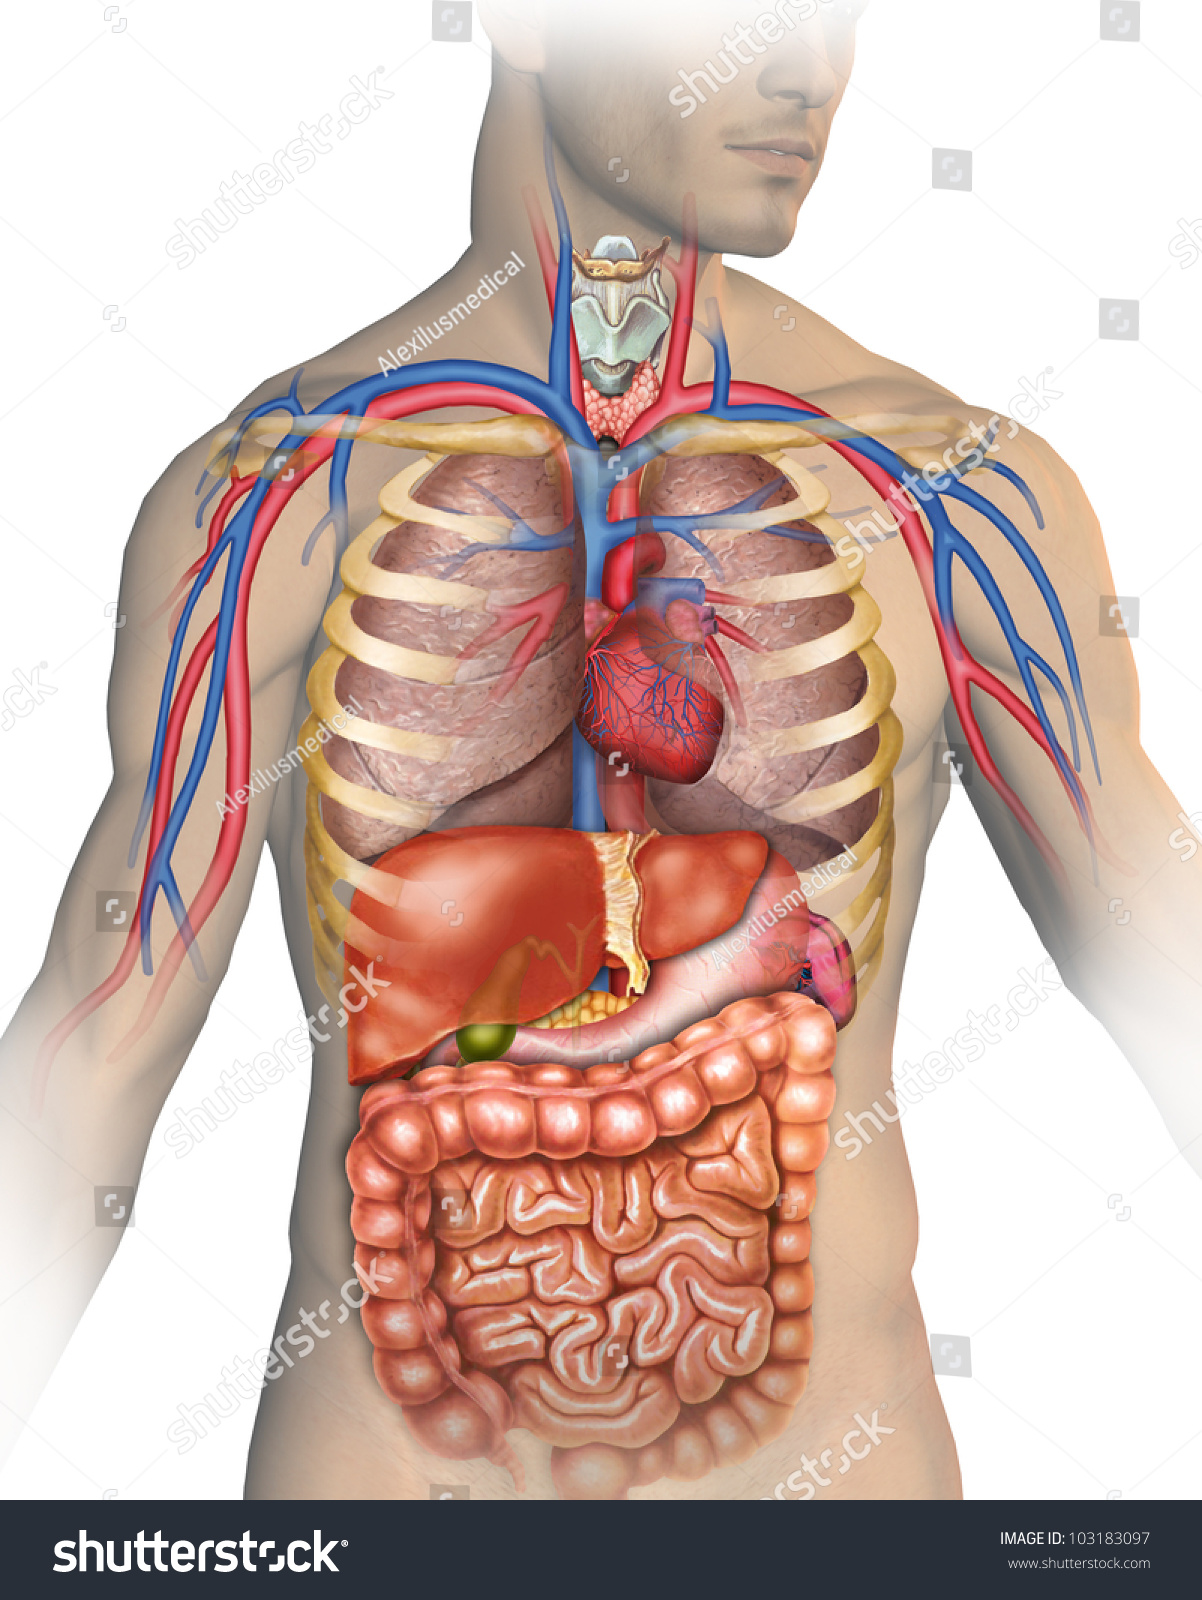 human body stock illustration 103183097 - shutterstock, Muscles